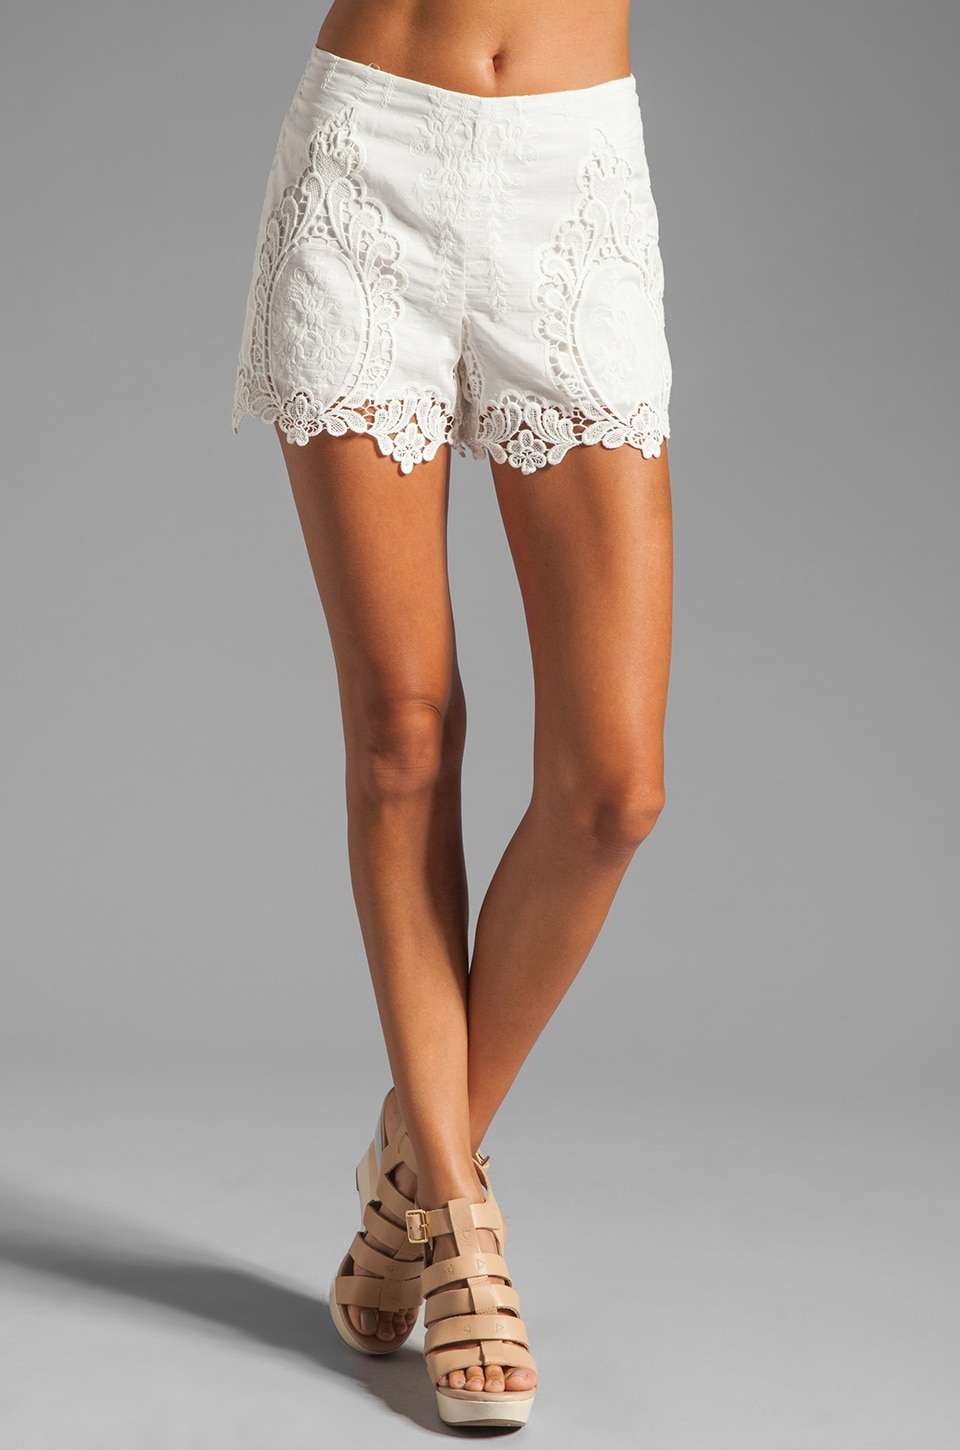 Dolce Vita Wira Shorts in White